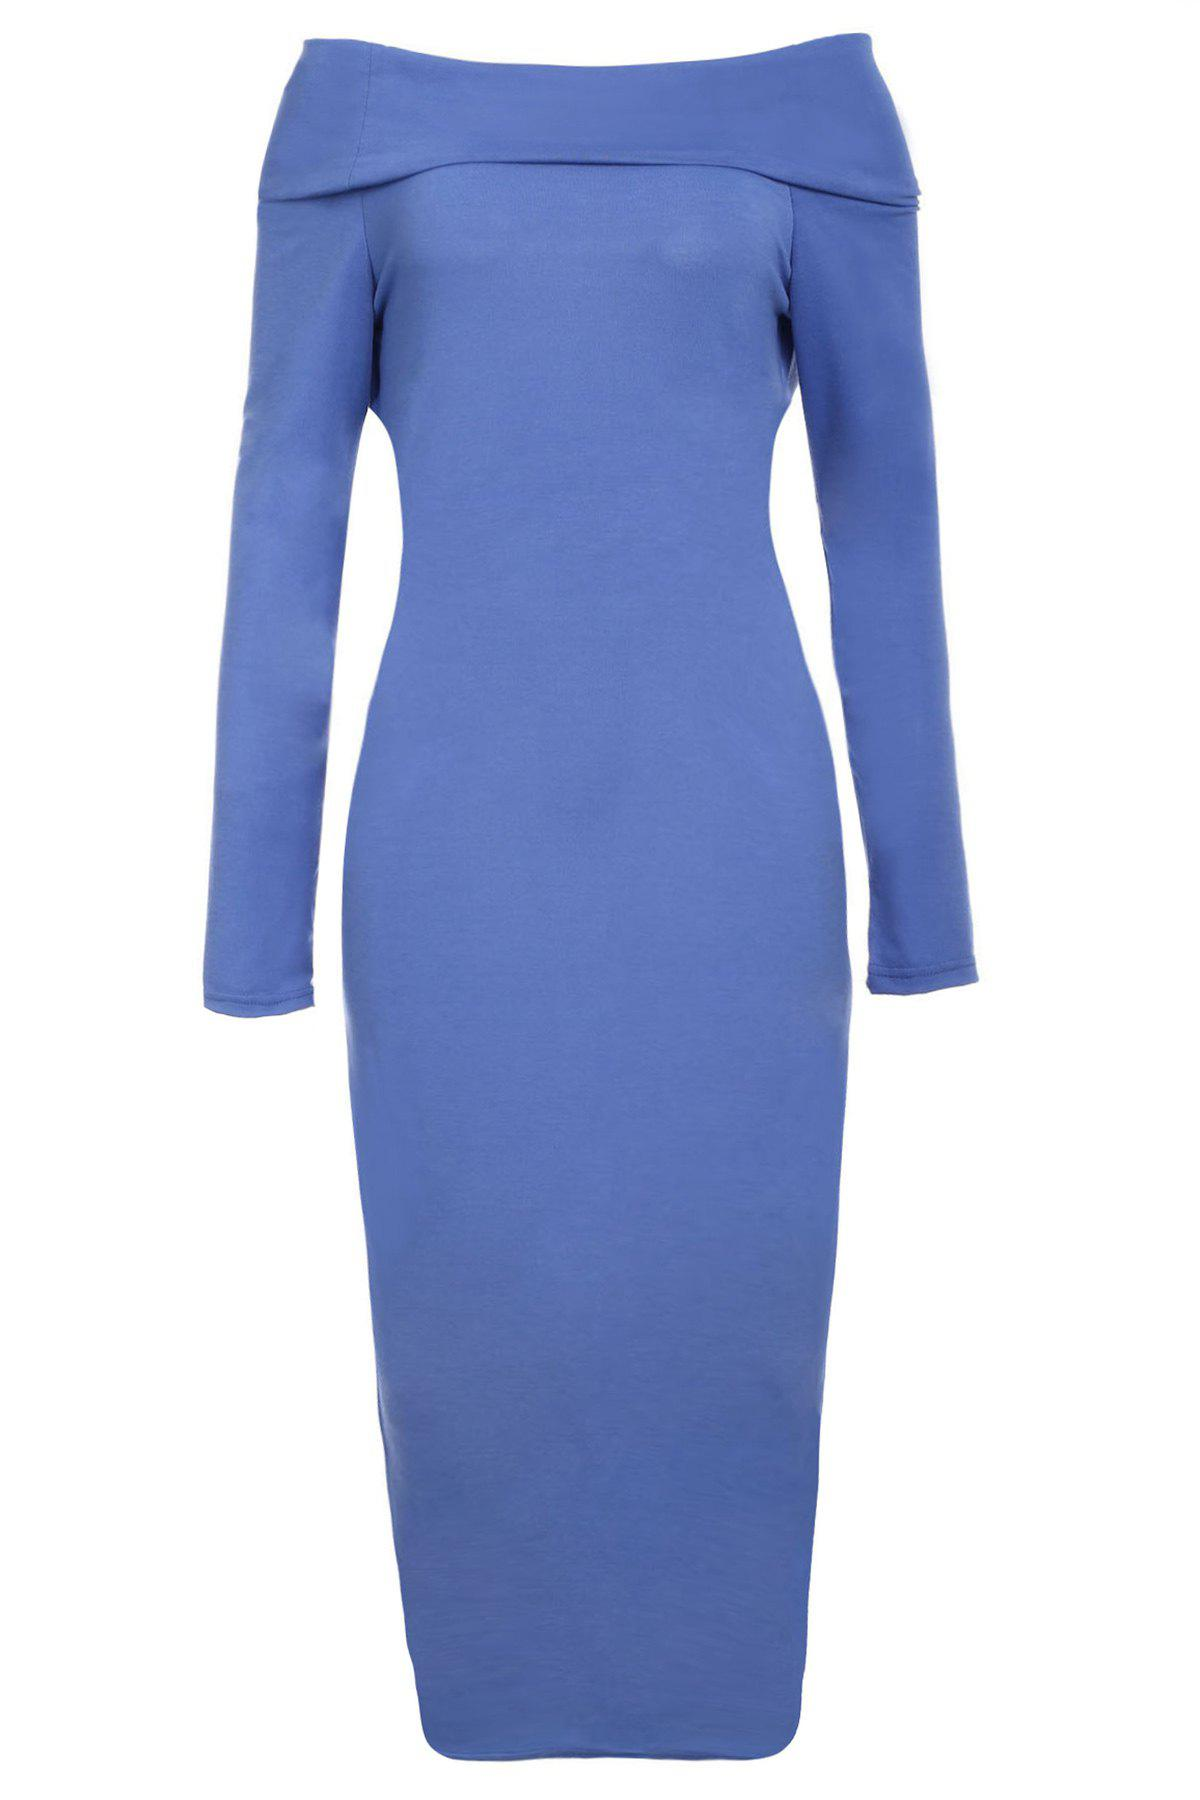 Cheap Off-The-Shoulder Long Sleeve Bodycon Midi Dress